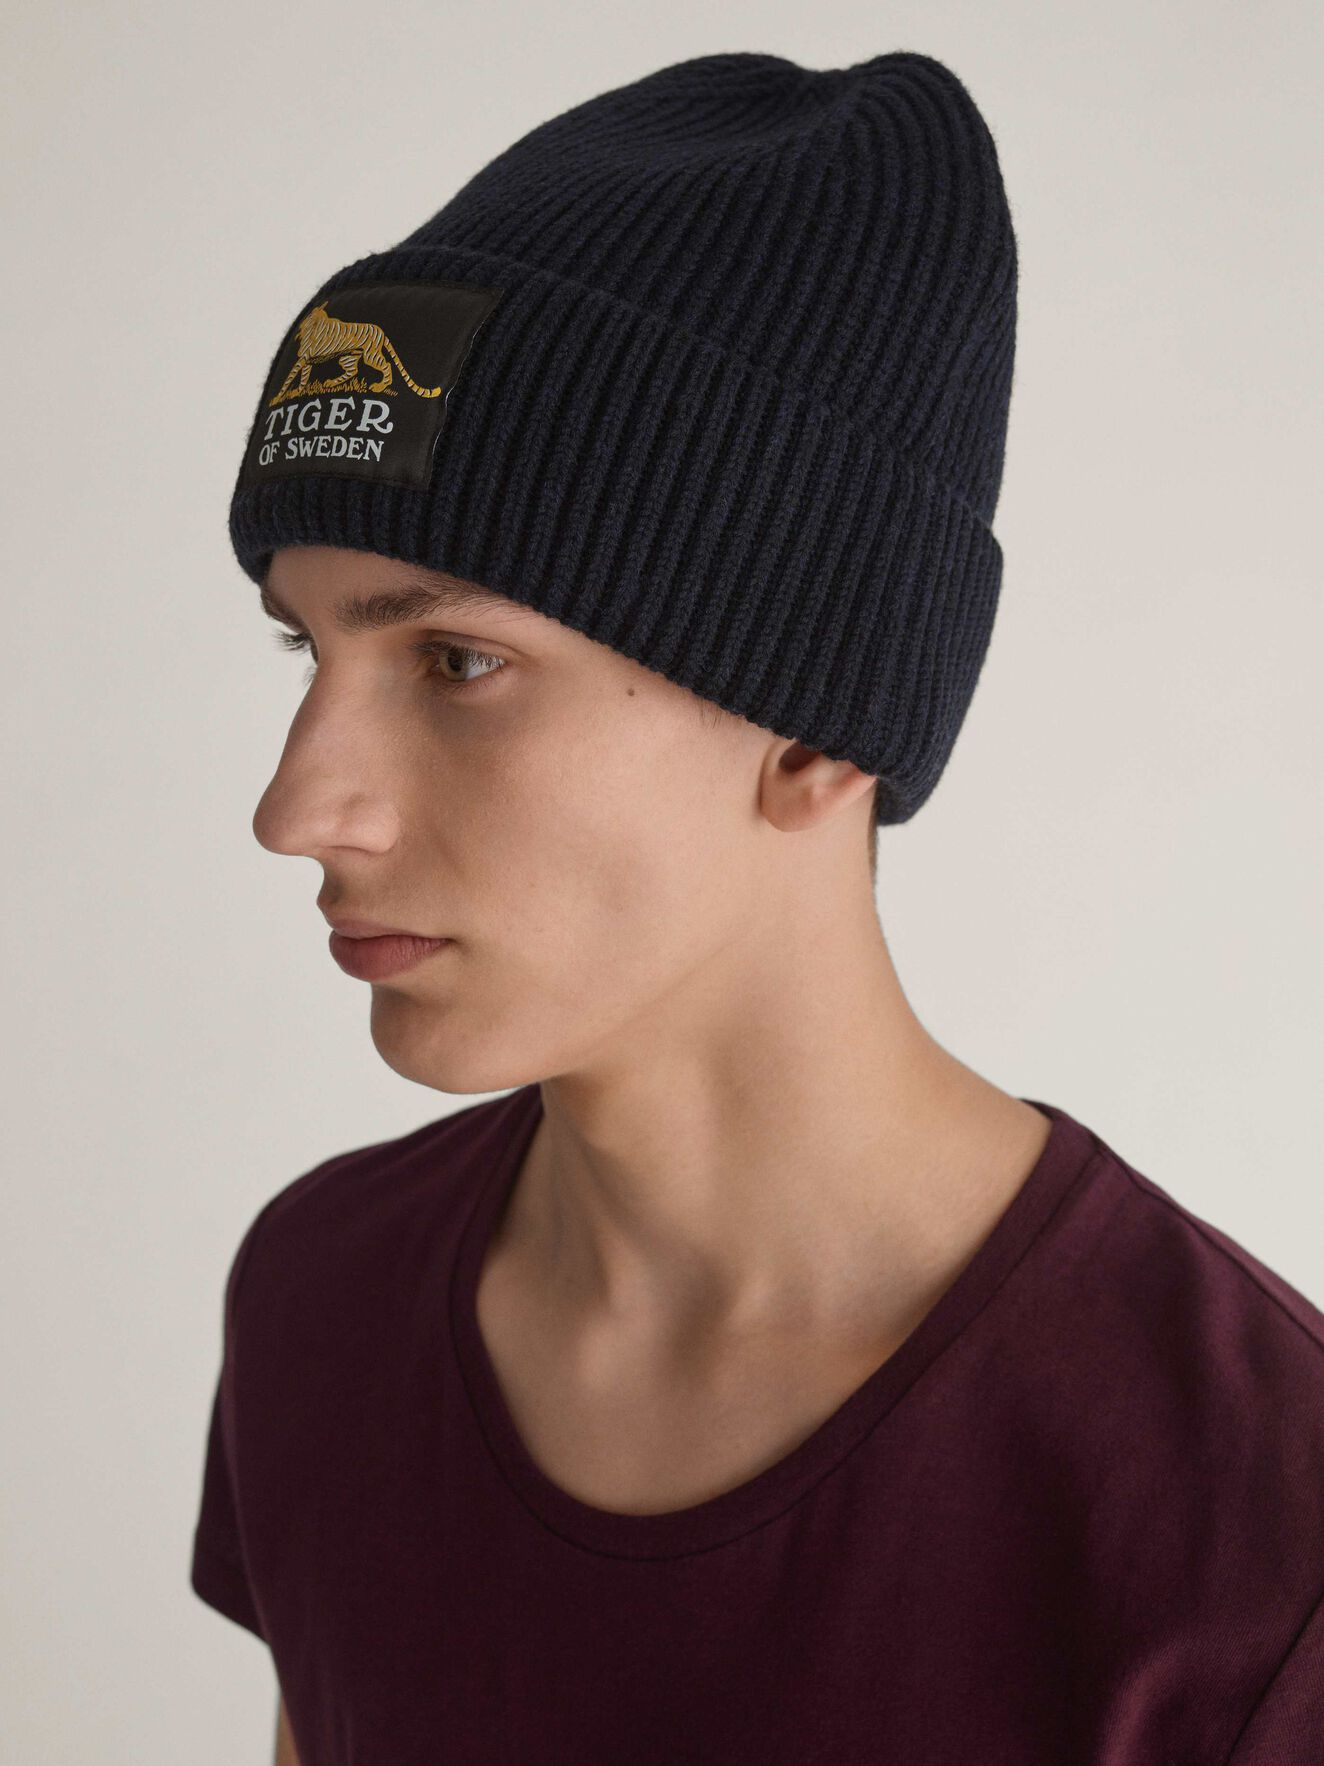 Huntt Beanie in Light Ink from Tiger of Sweden